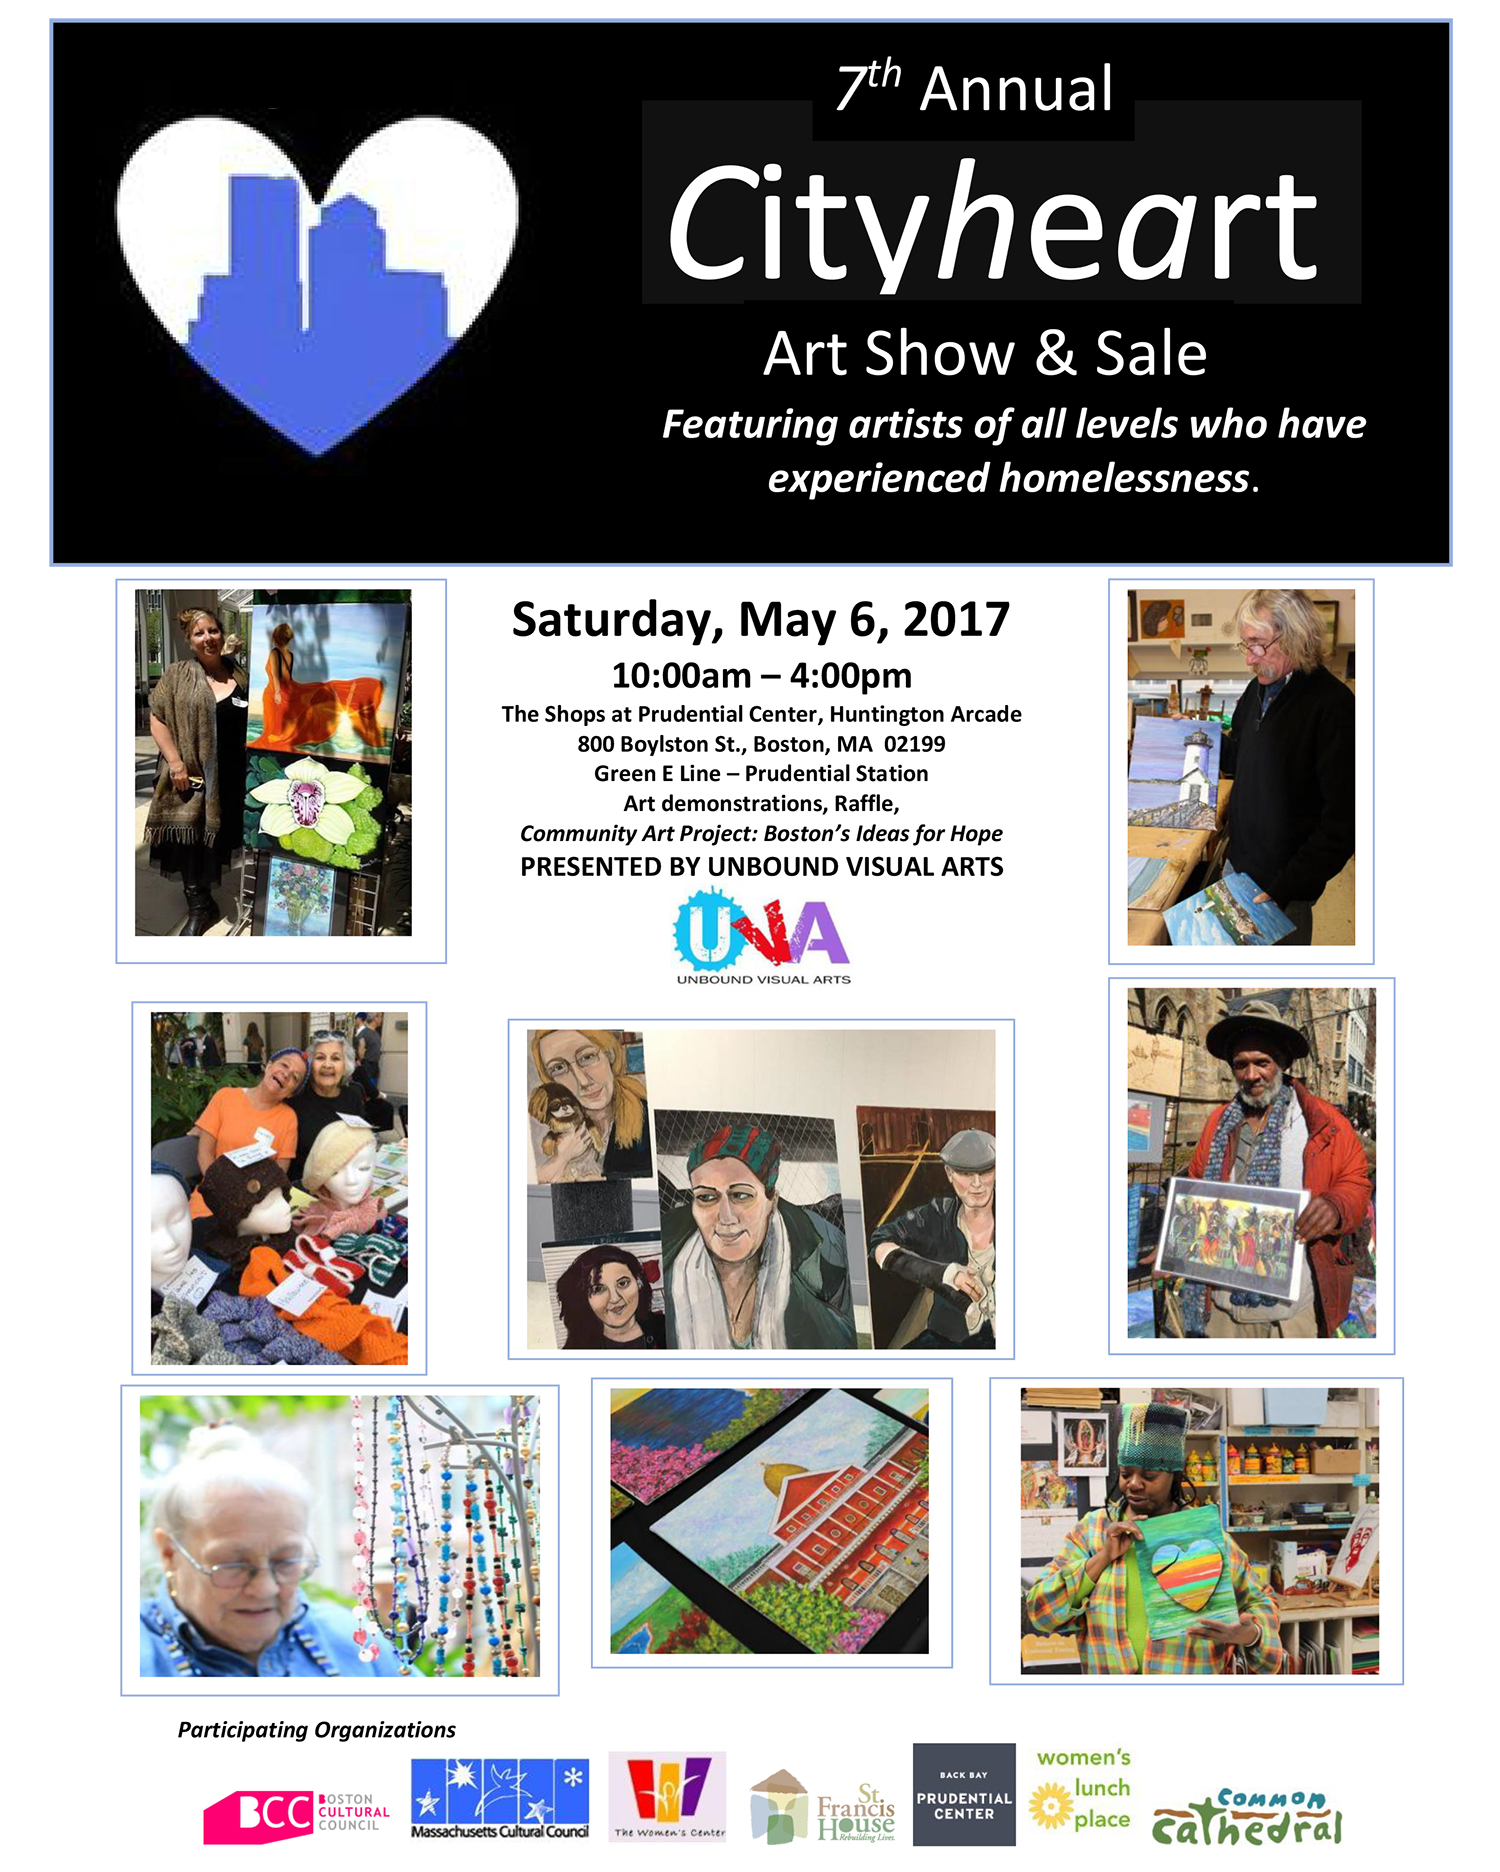 Art Show Calendar : City heart annual art show and sale presented by